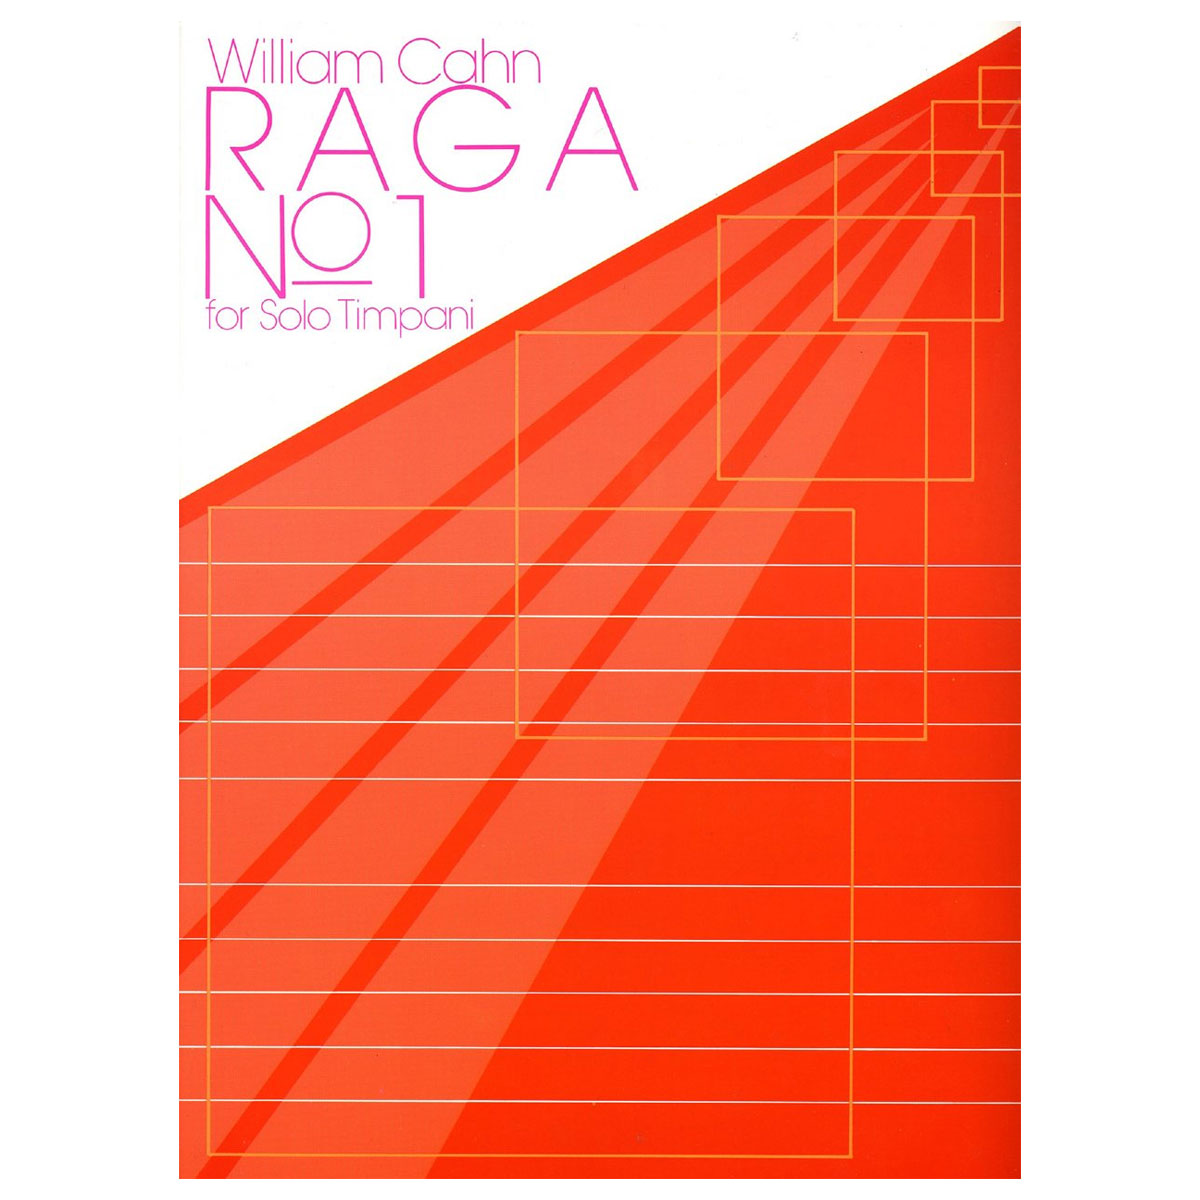 Raga No. 1 by William L. Cahn